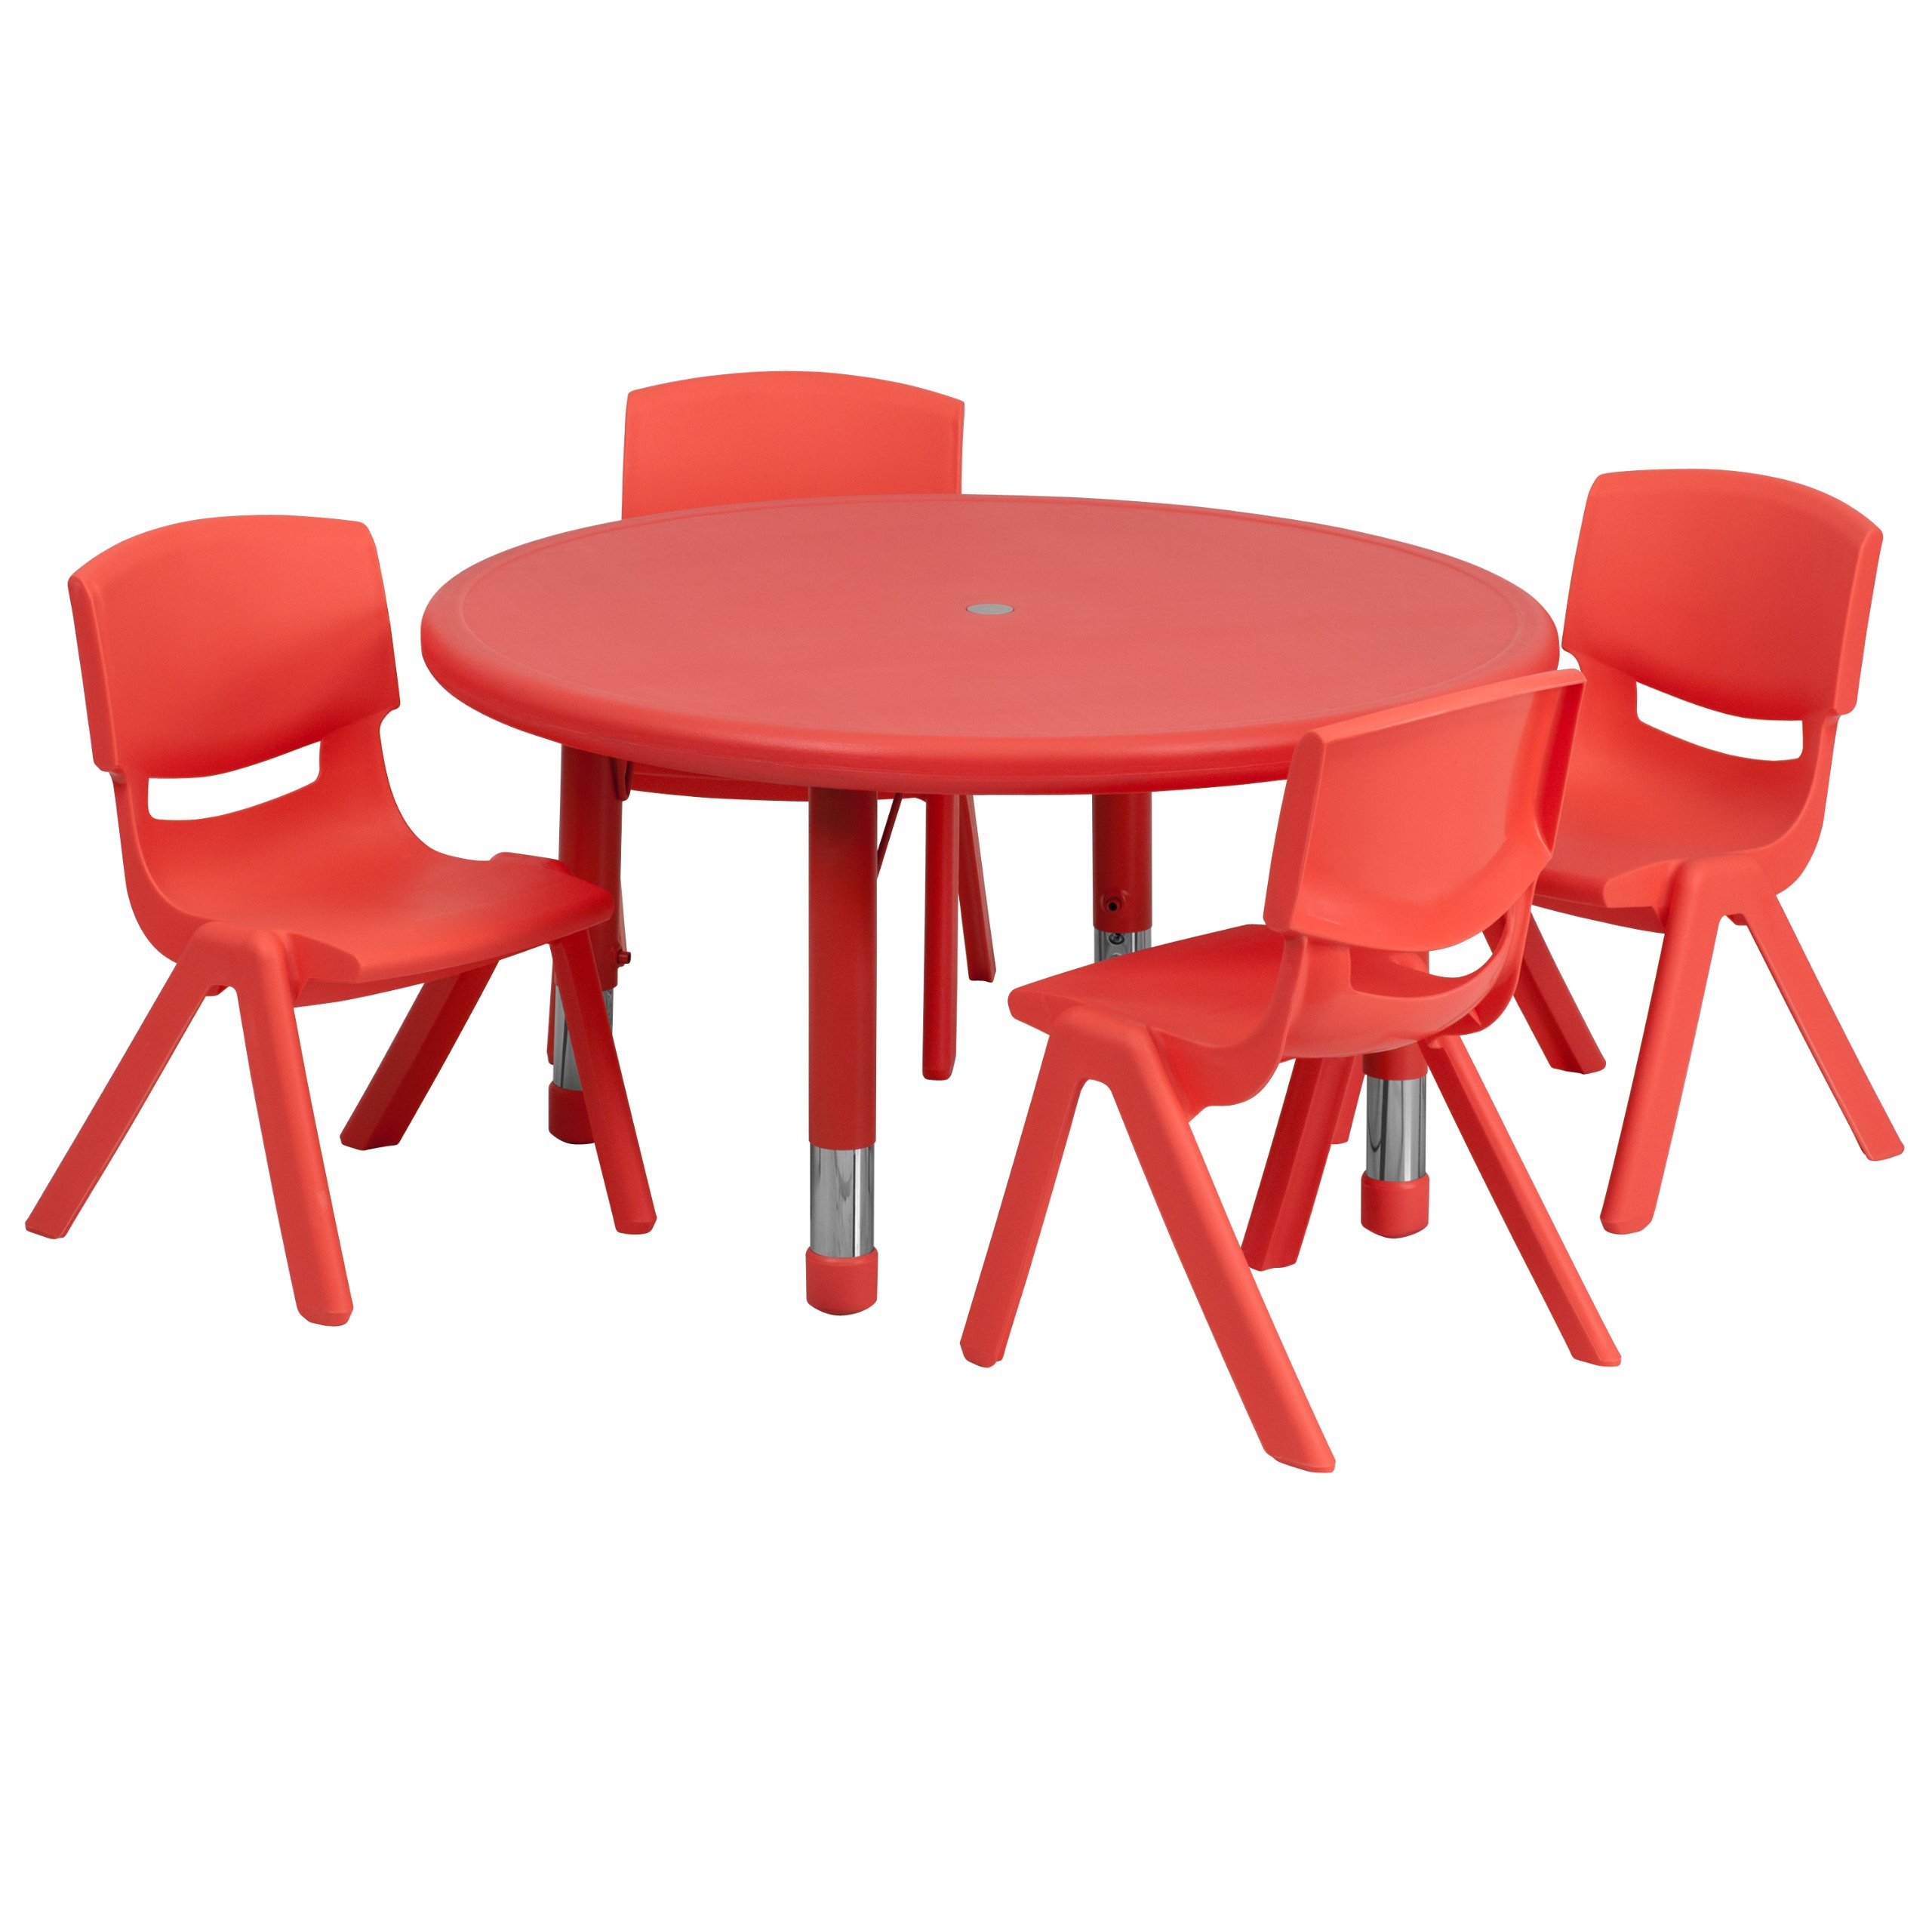 Flash Furniture 33'' Round Red Plastic Height Adjustable Activity Table Set with 4 Chairs